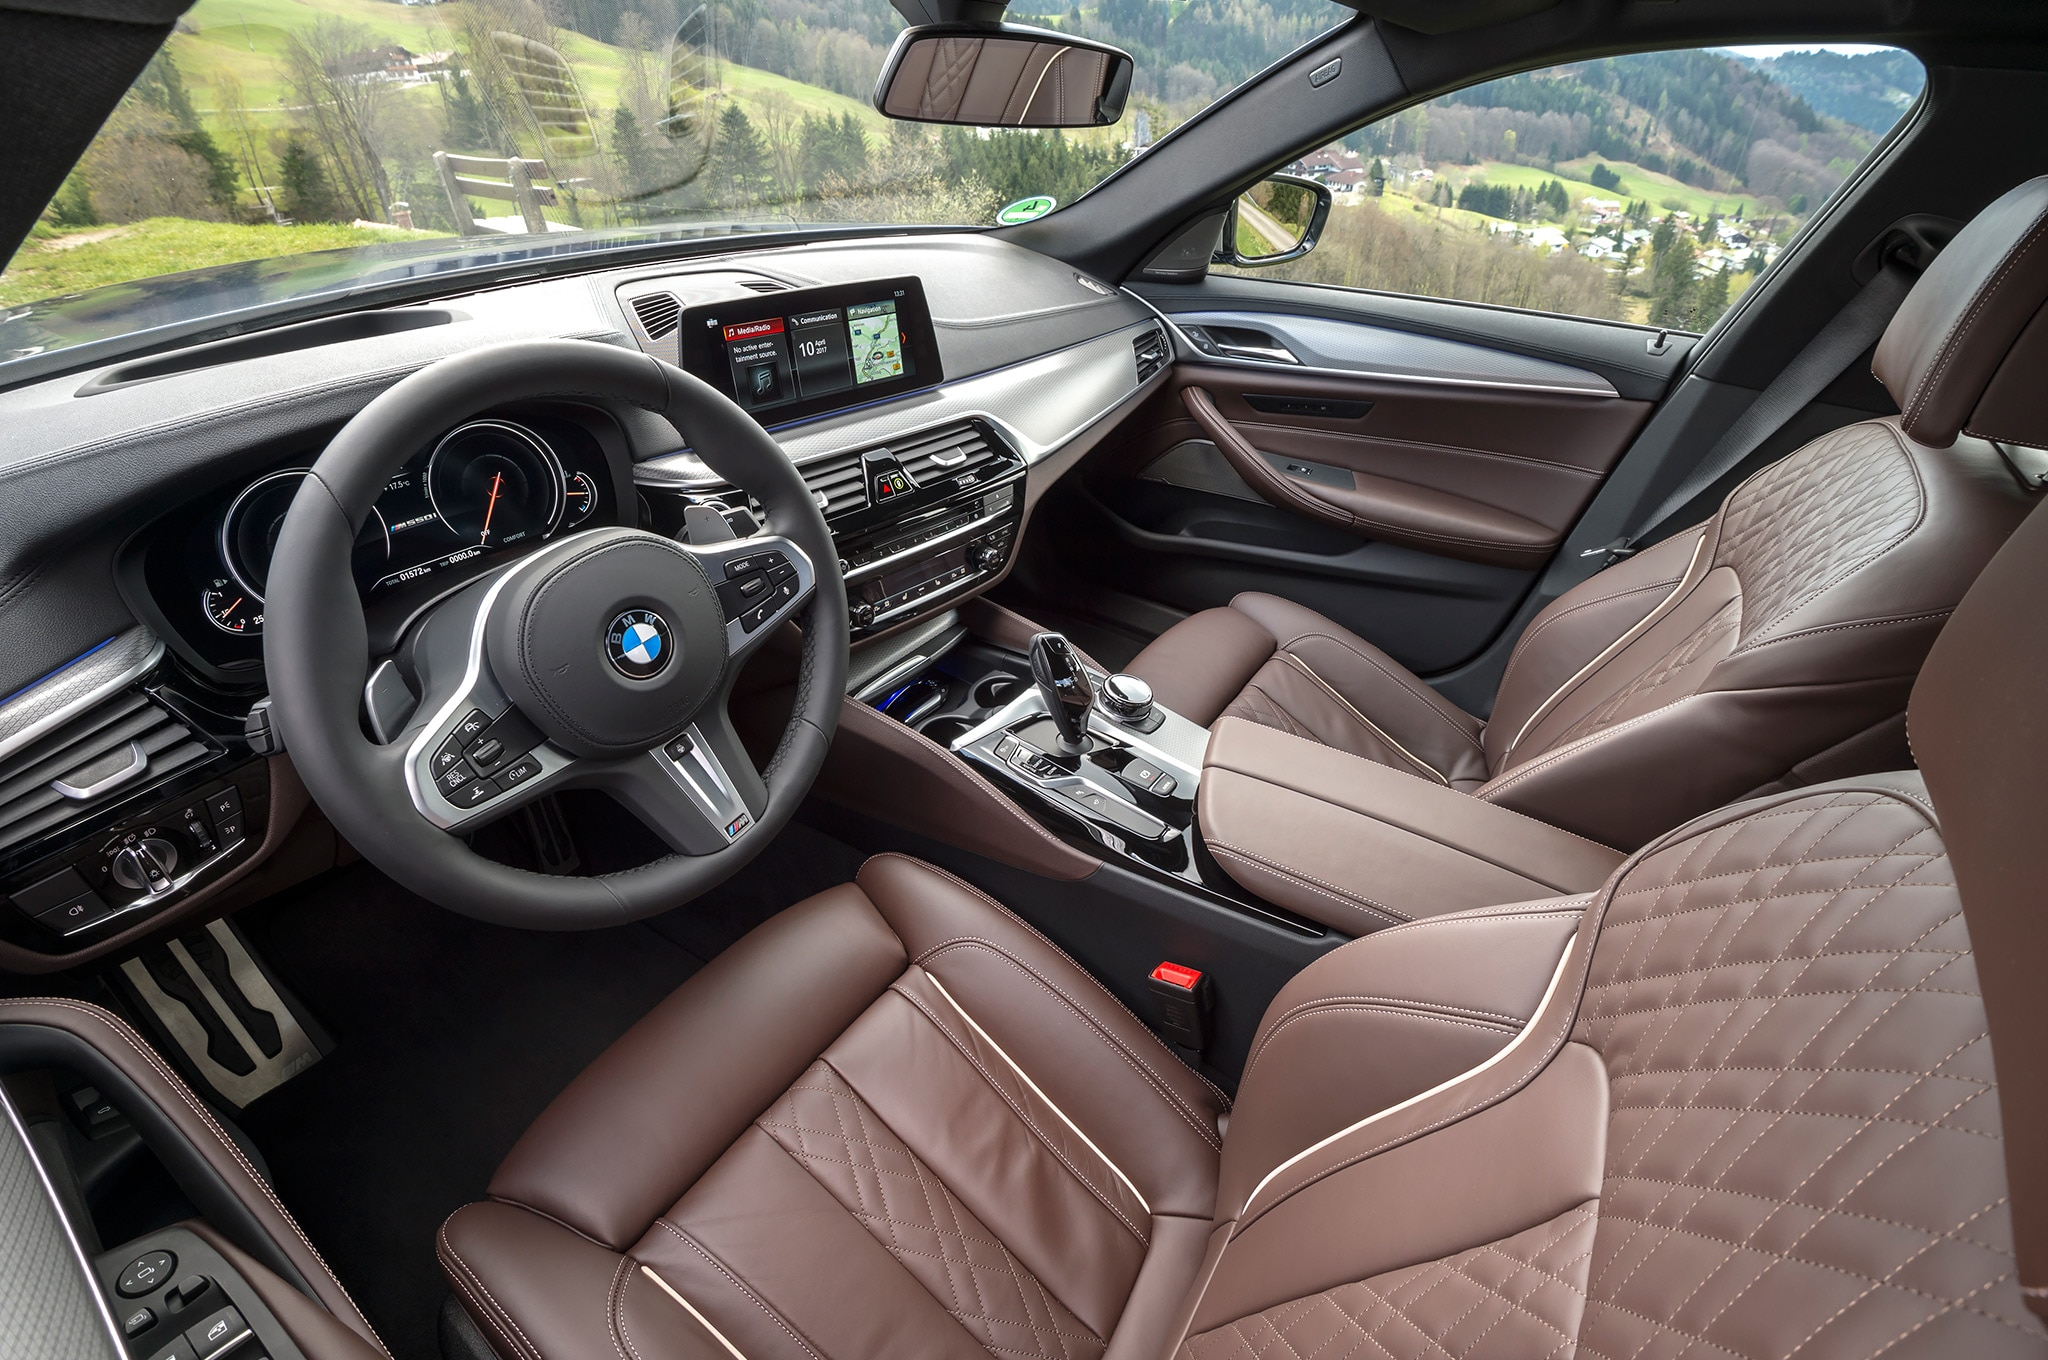 2018 bmw 5 series interior. plain interior 450 in 2018 bmw 5 series interior